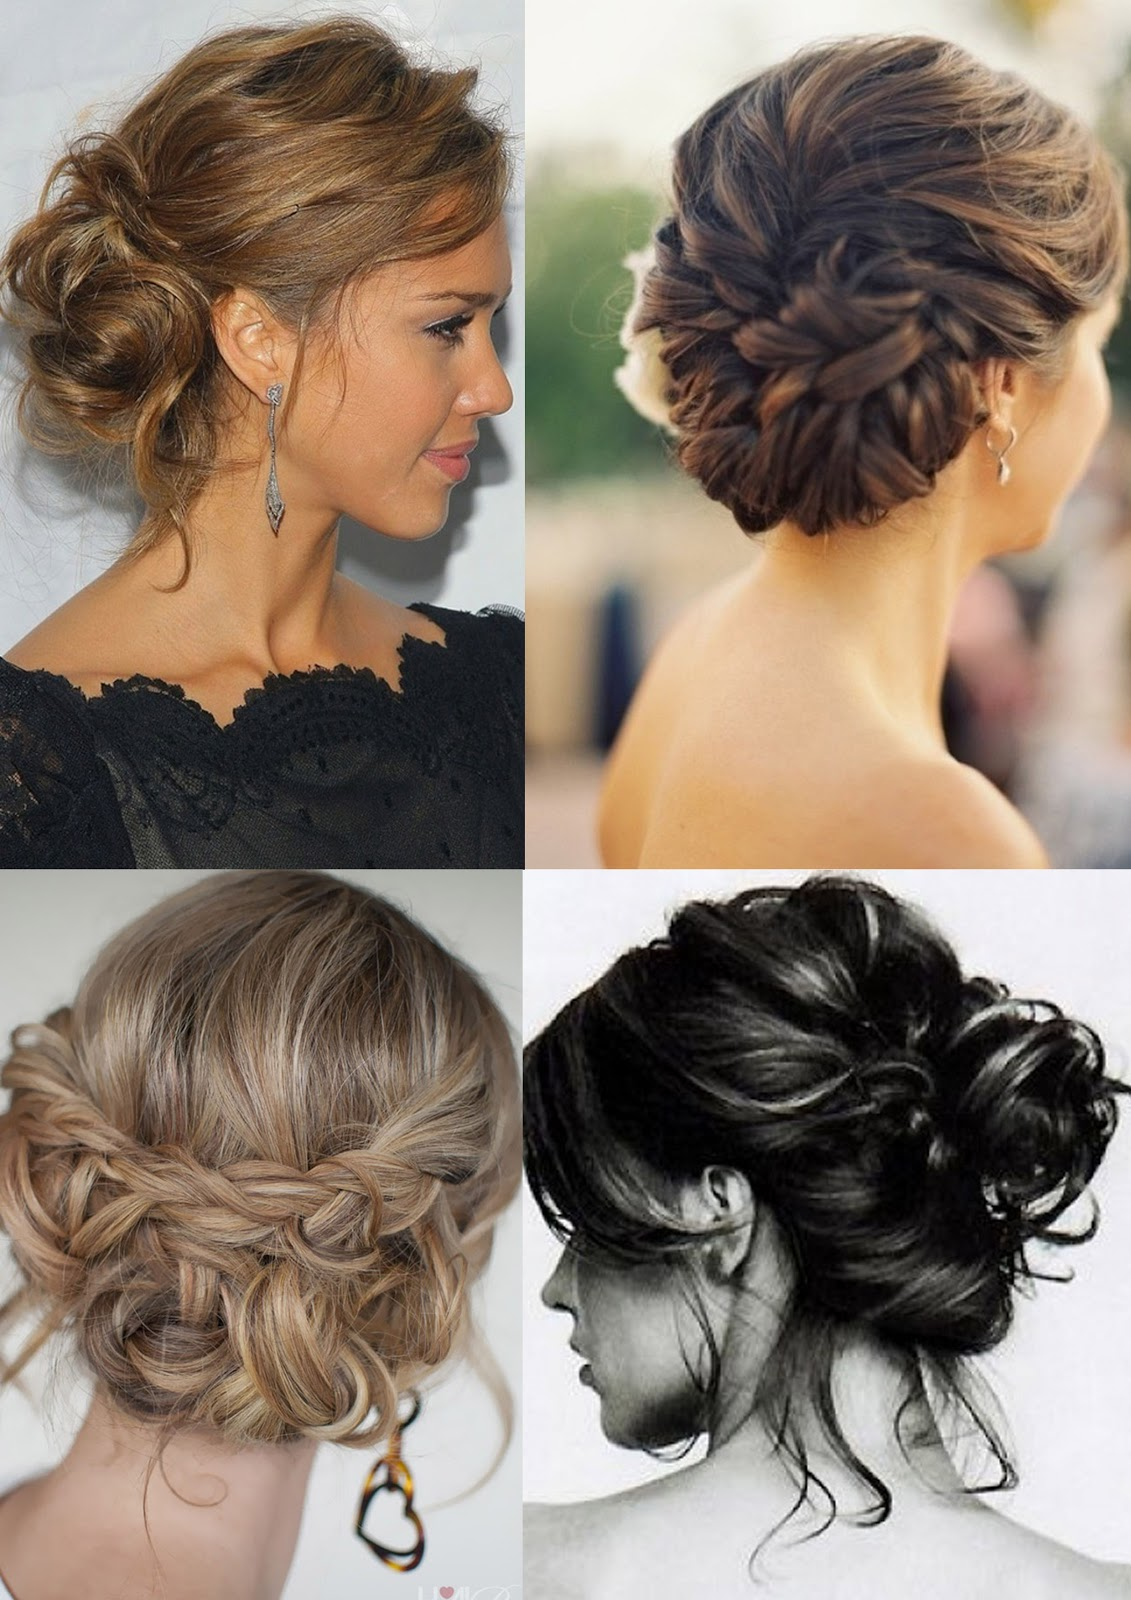 Try A Messy Bun Or A Stunning Pin Up Hair Style